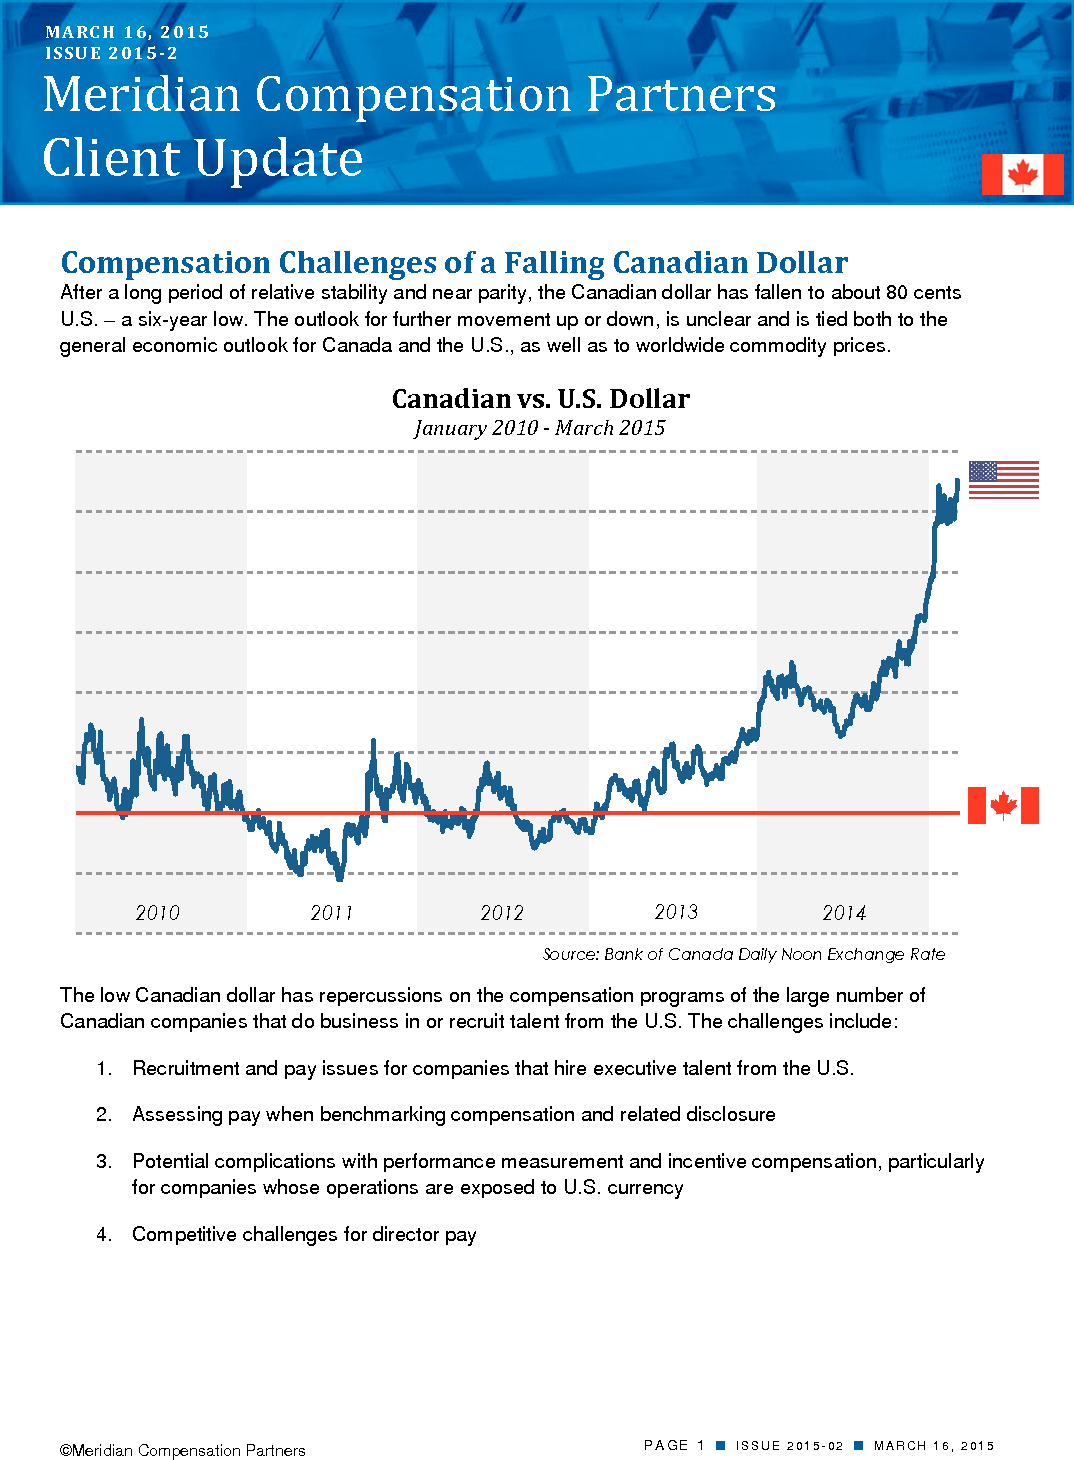 Compensation Challenges of a Falling Canadian Dollar (PDF)